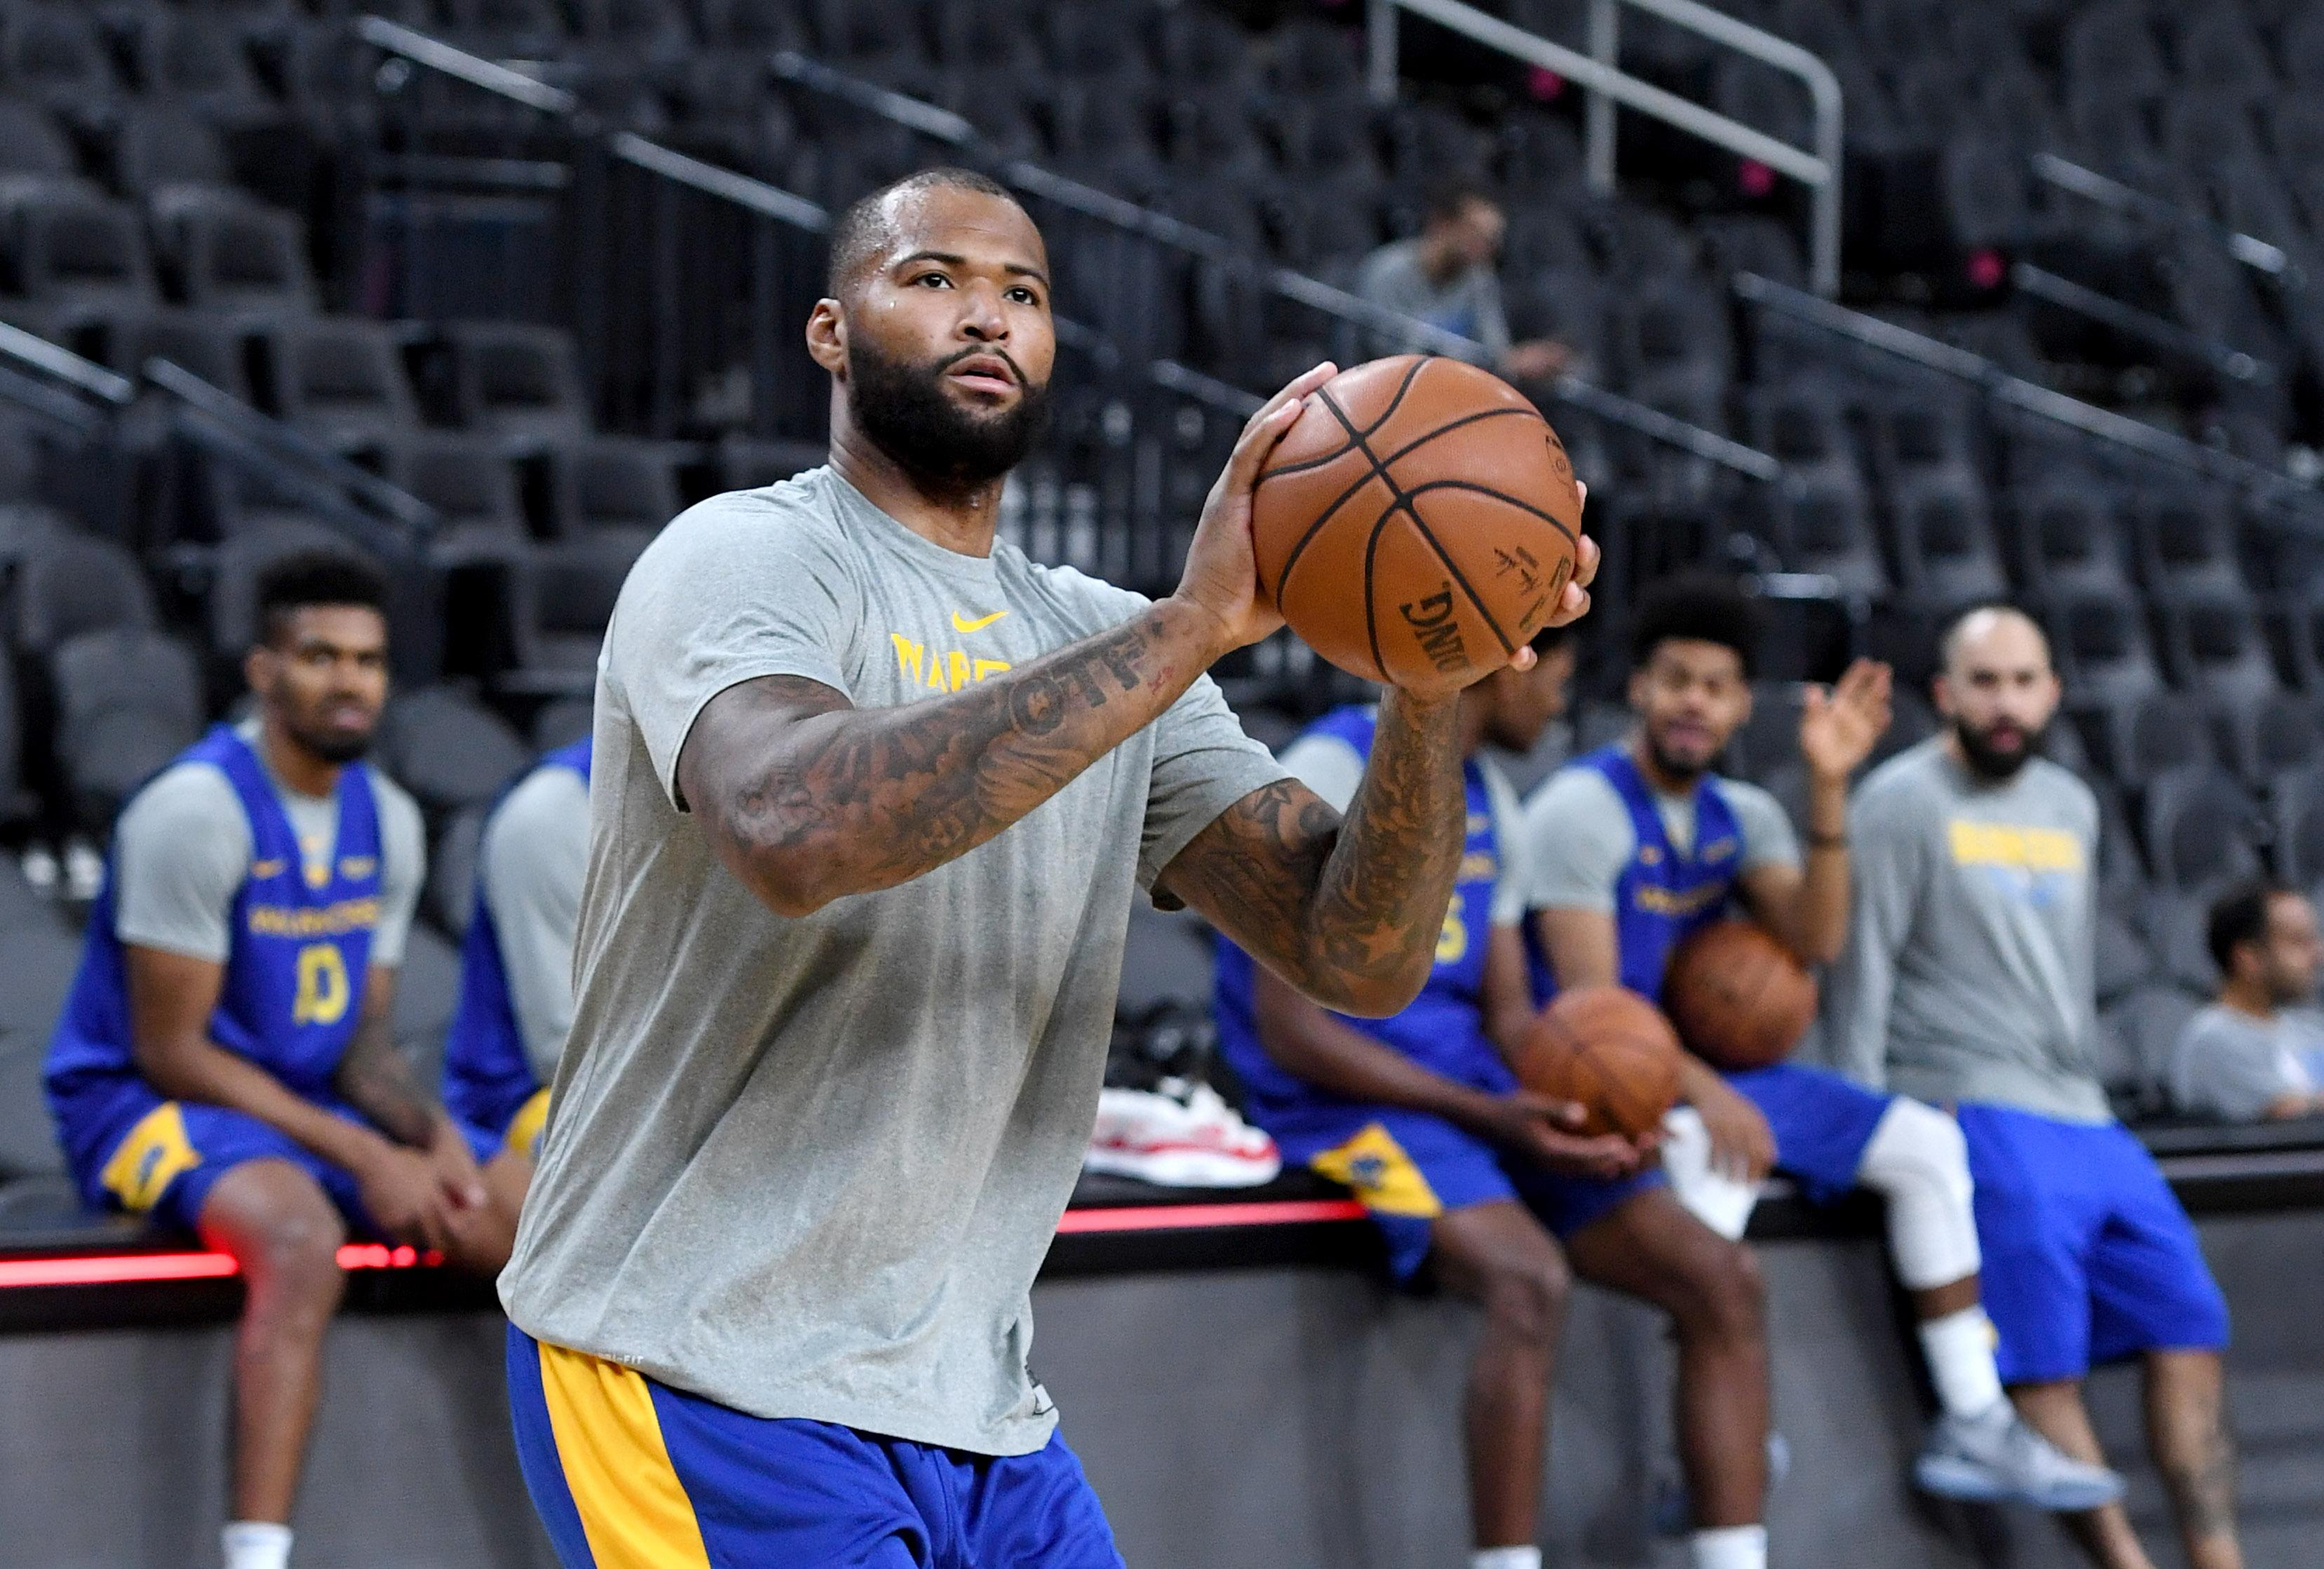 Golden State Warriors: What should we expect from DeMarcus Cousins?